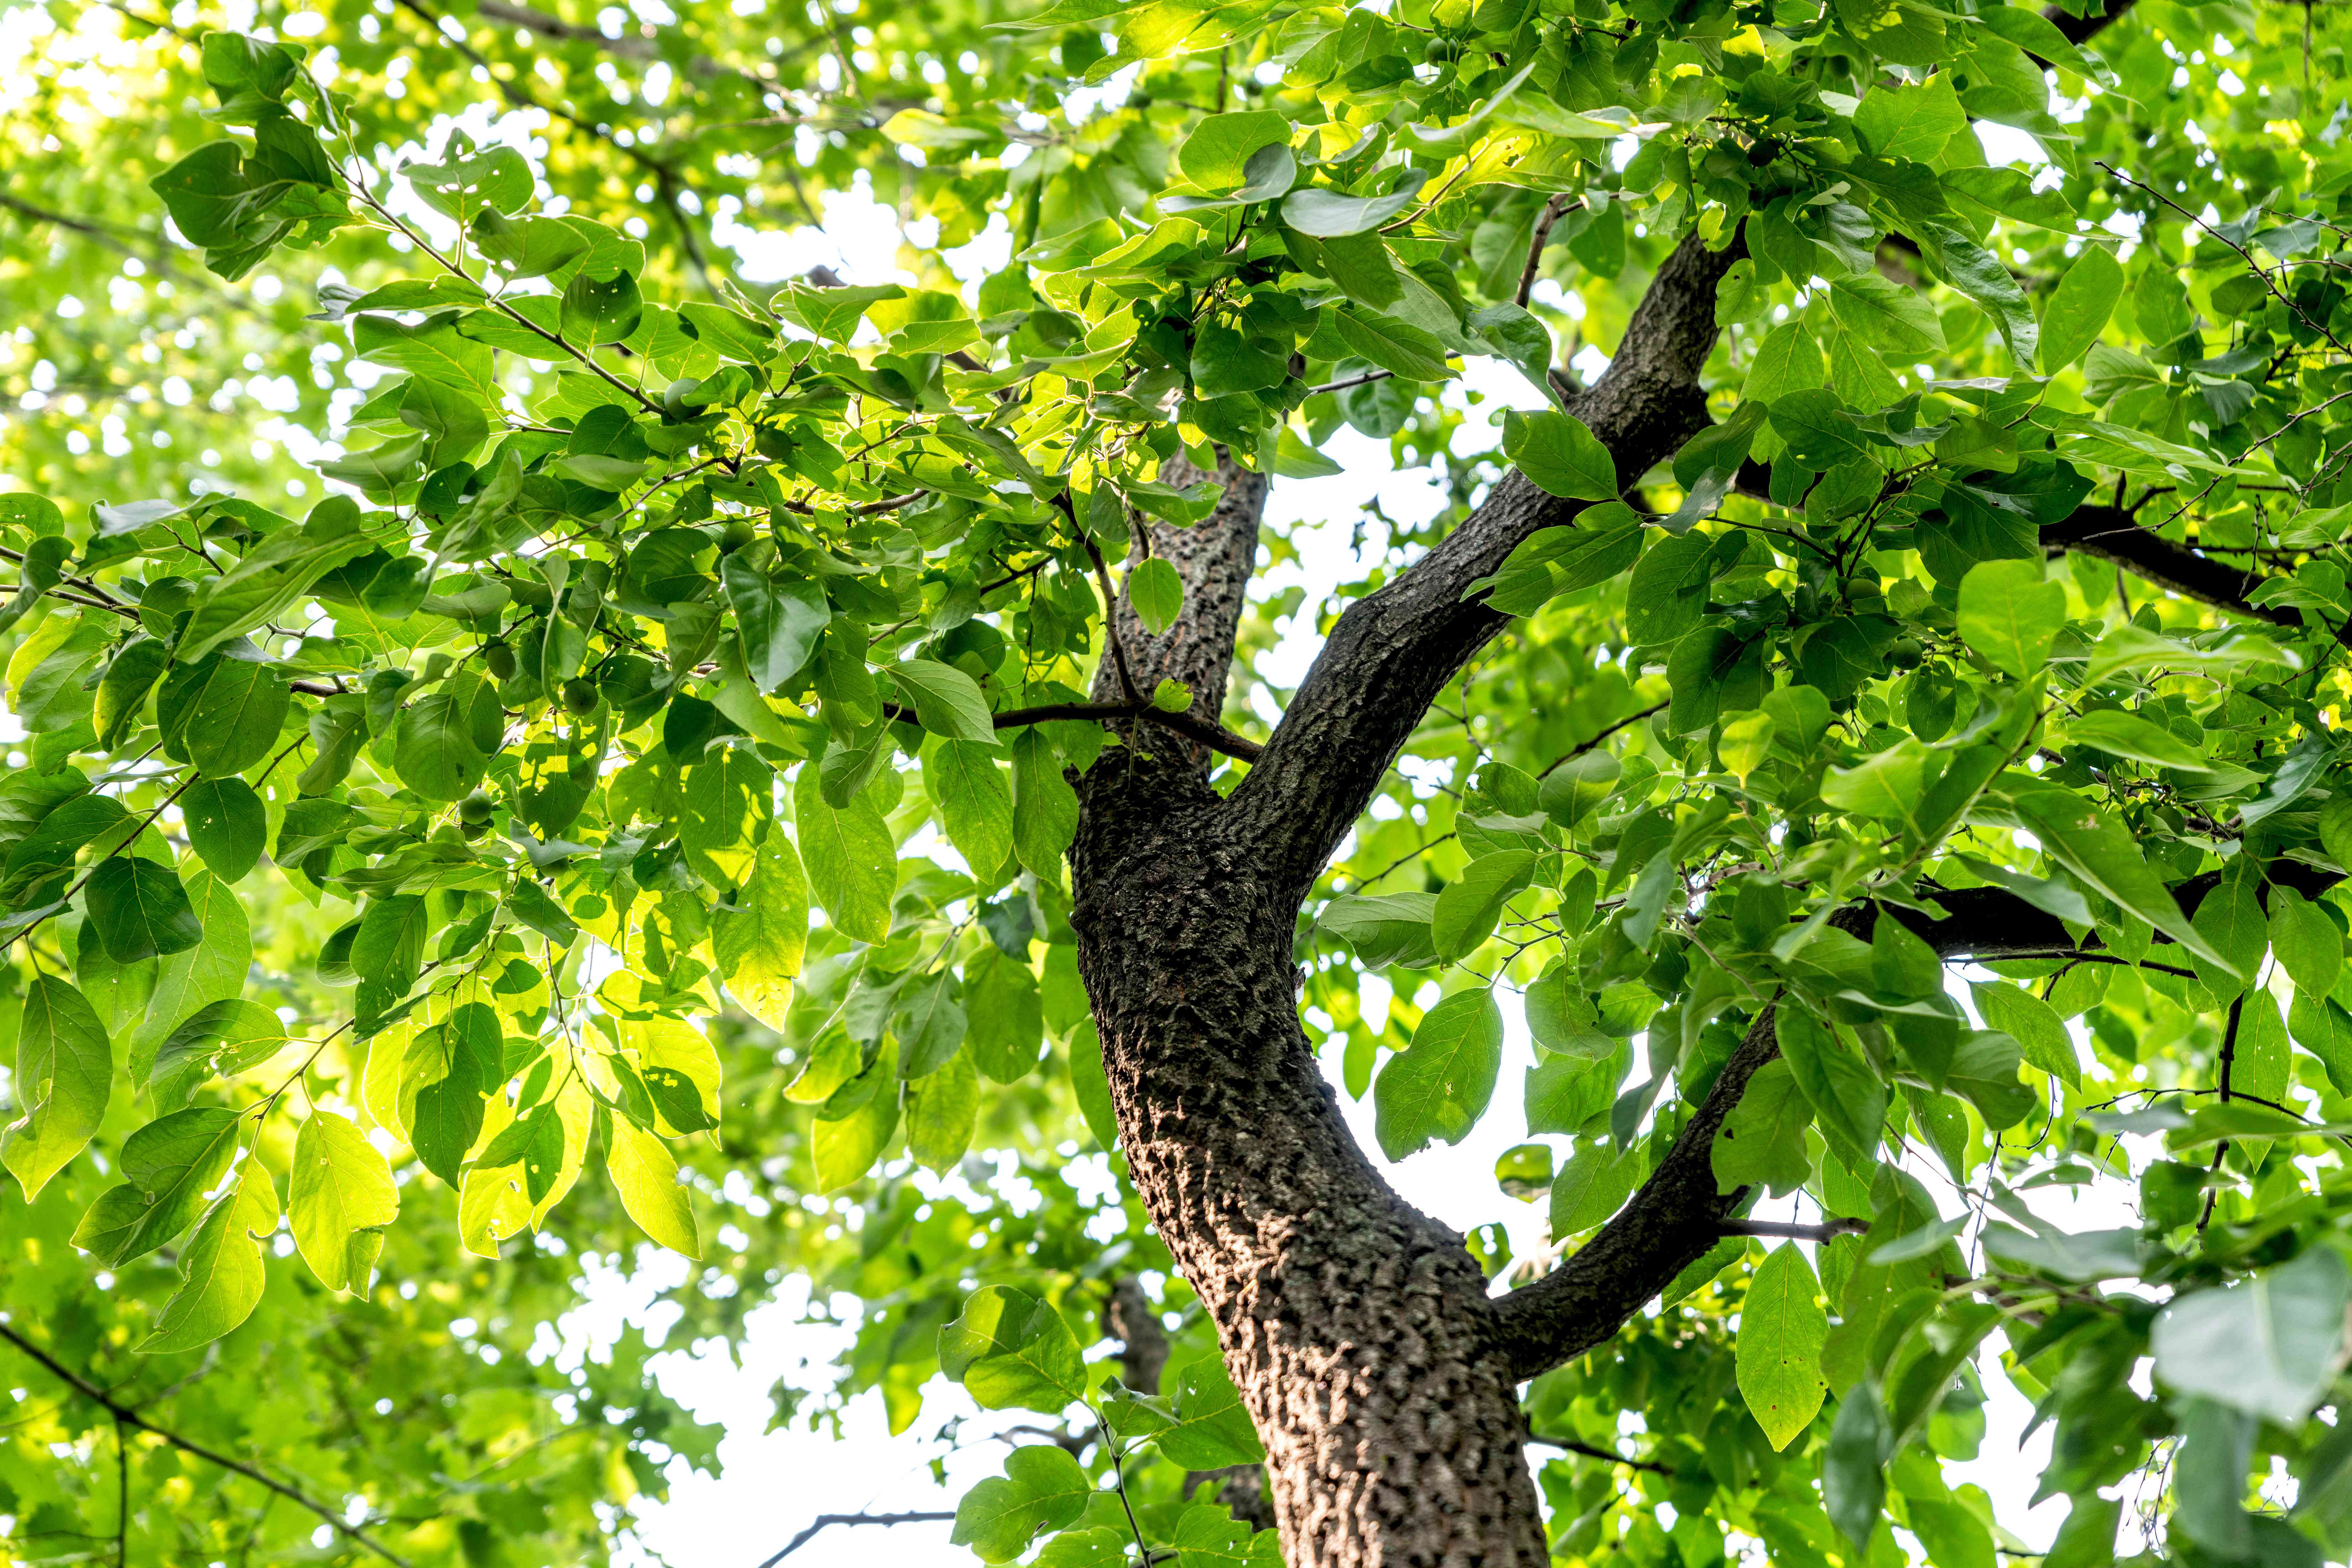 Persimmon tree trunk with deep grooves and bright green leaves in branches